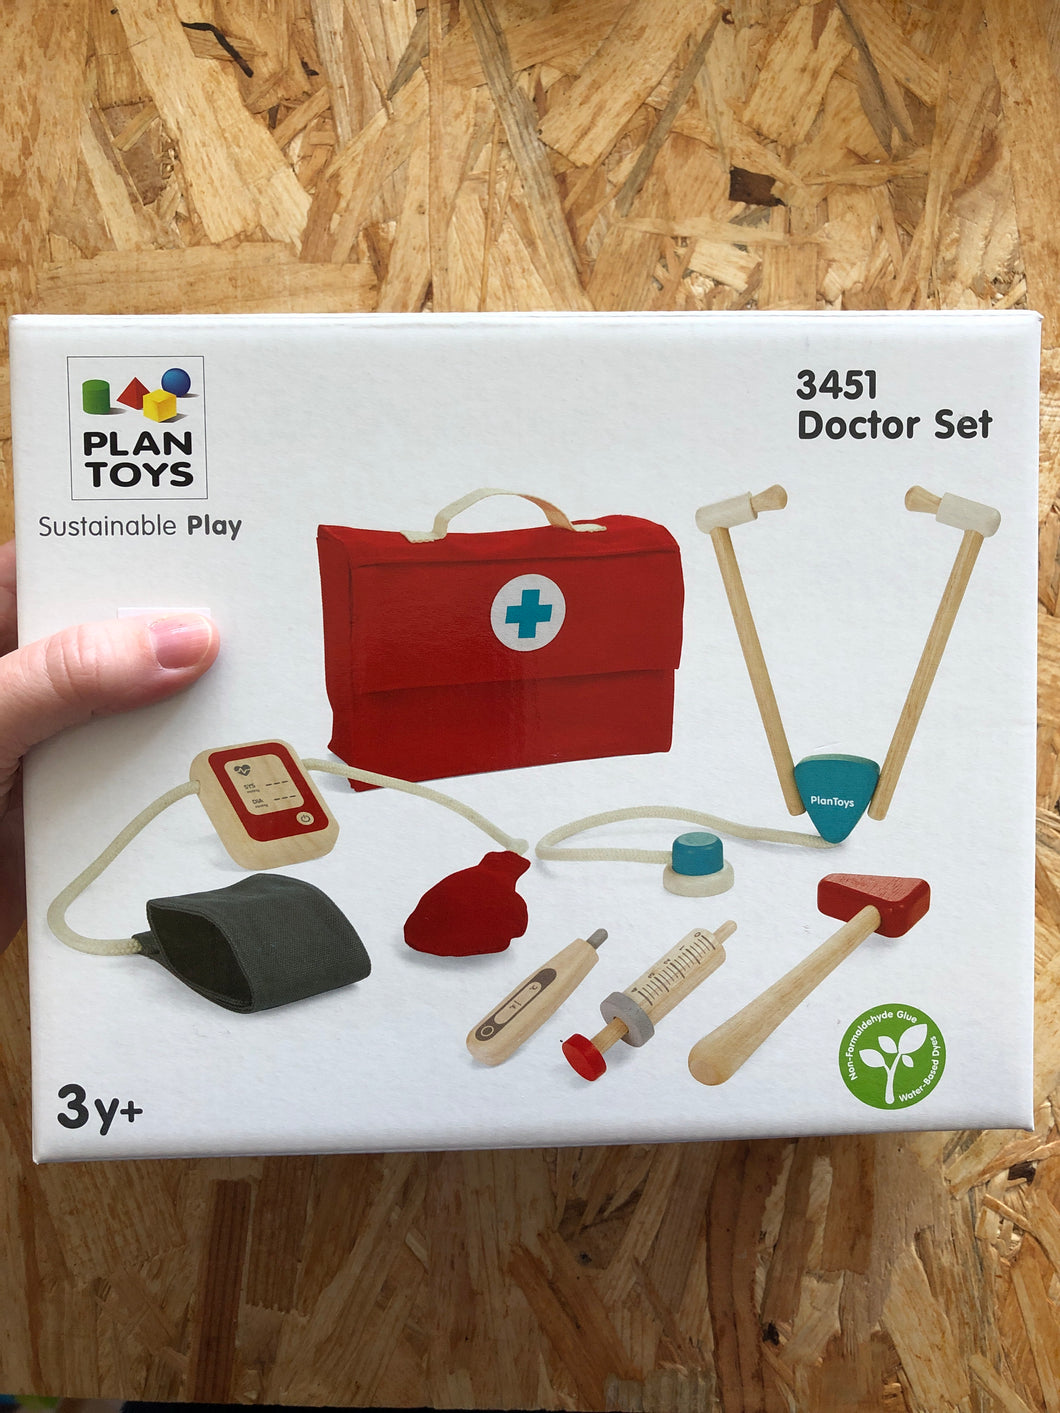 Plan Toys - Doctor Set